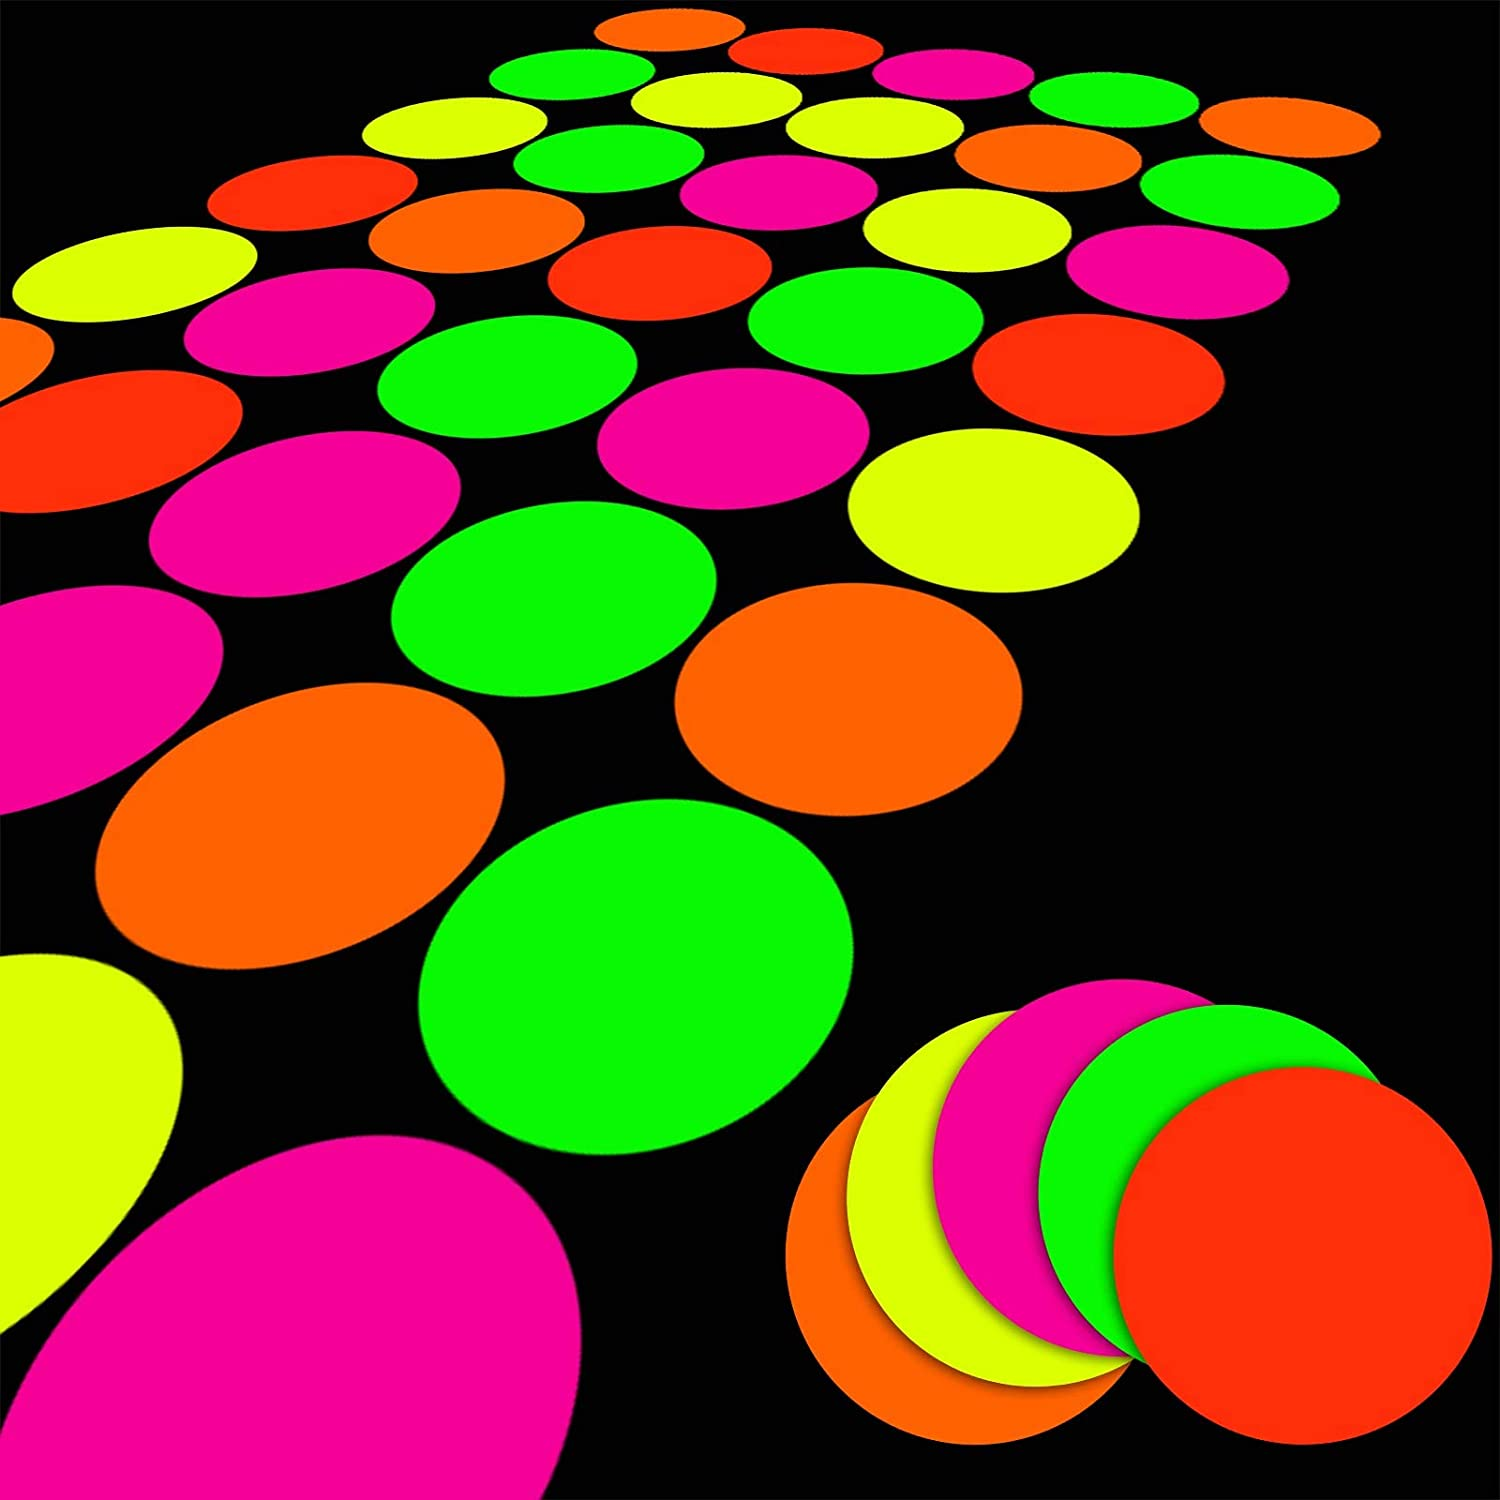 25 SheetsNeonPapers,GlowPartyDecoration SuppliesDIYDanceFloor Moves Games Classic TwisterUVReactiveMulti-Colored Cardstock for Black Light Neon Birthday Party Wedding, 5 Colors, Fluorescent